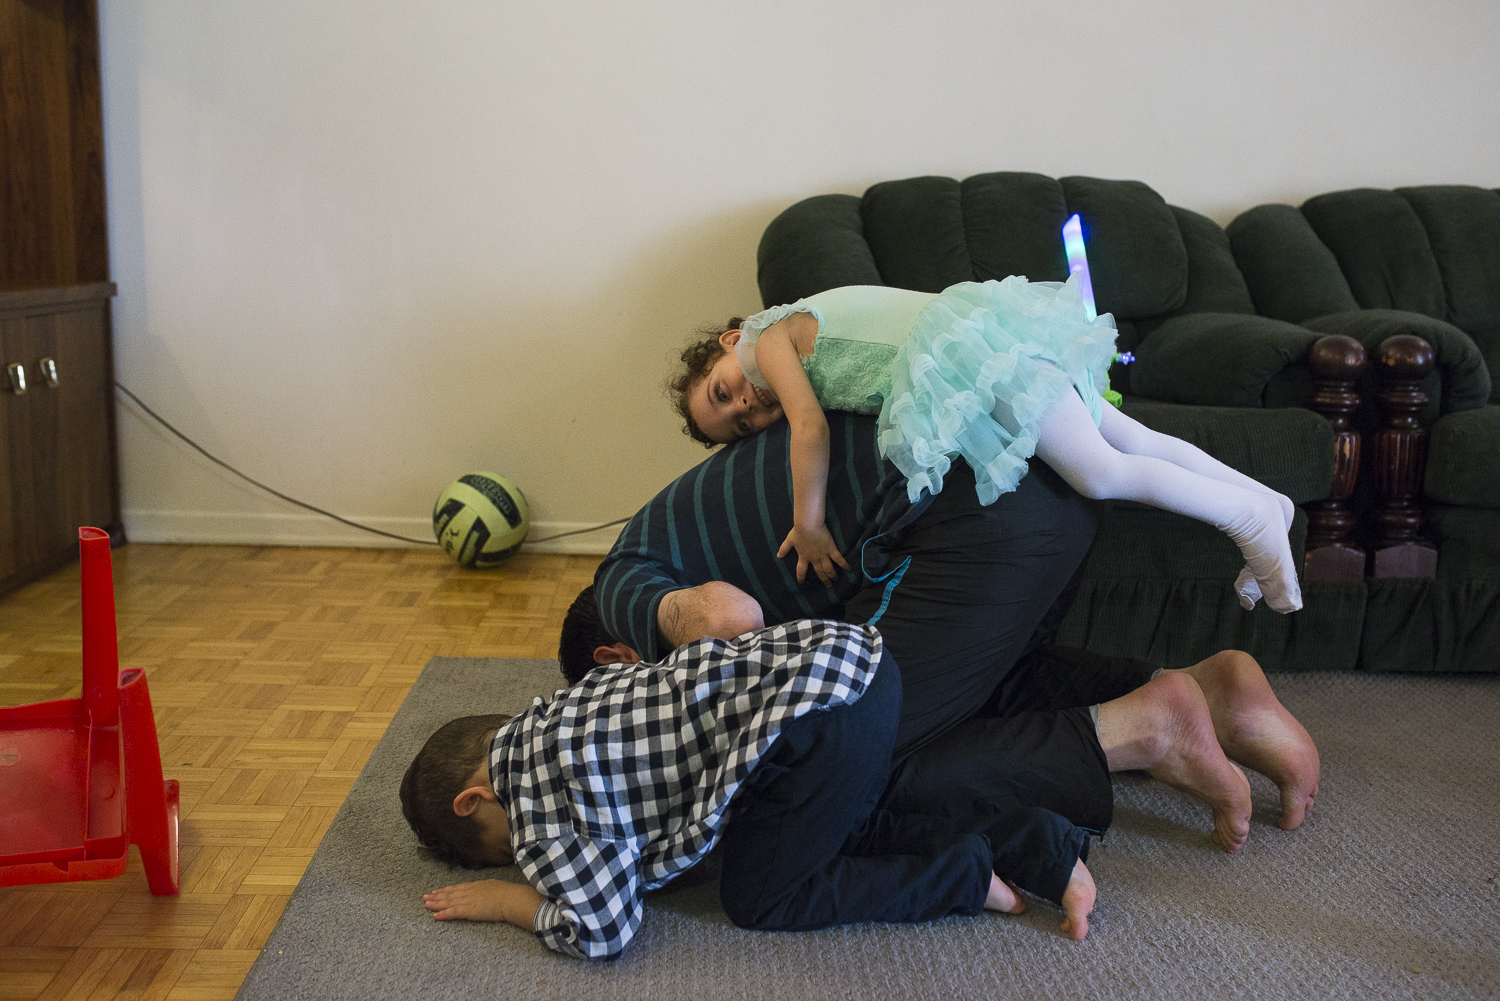 His daughter hugs him from the back during his prayer at home.